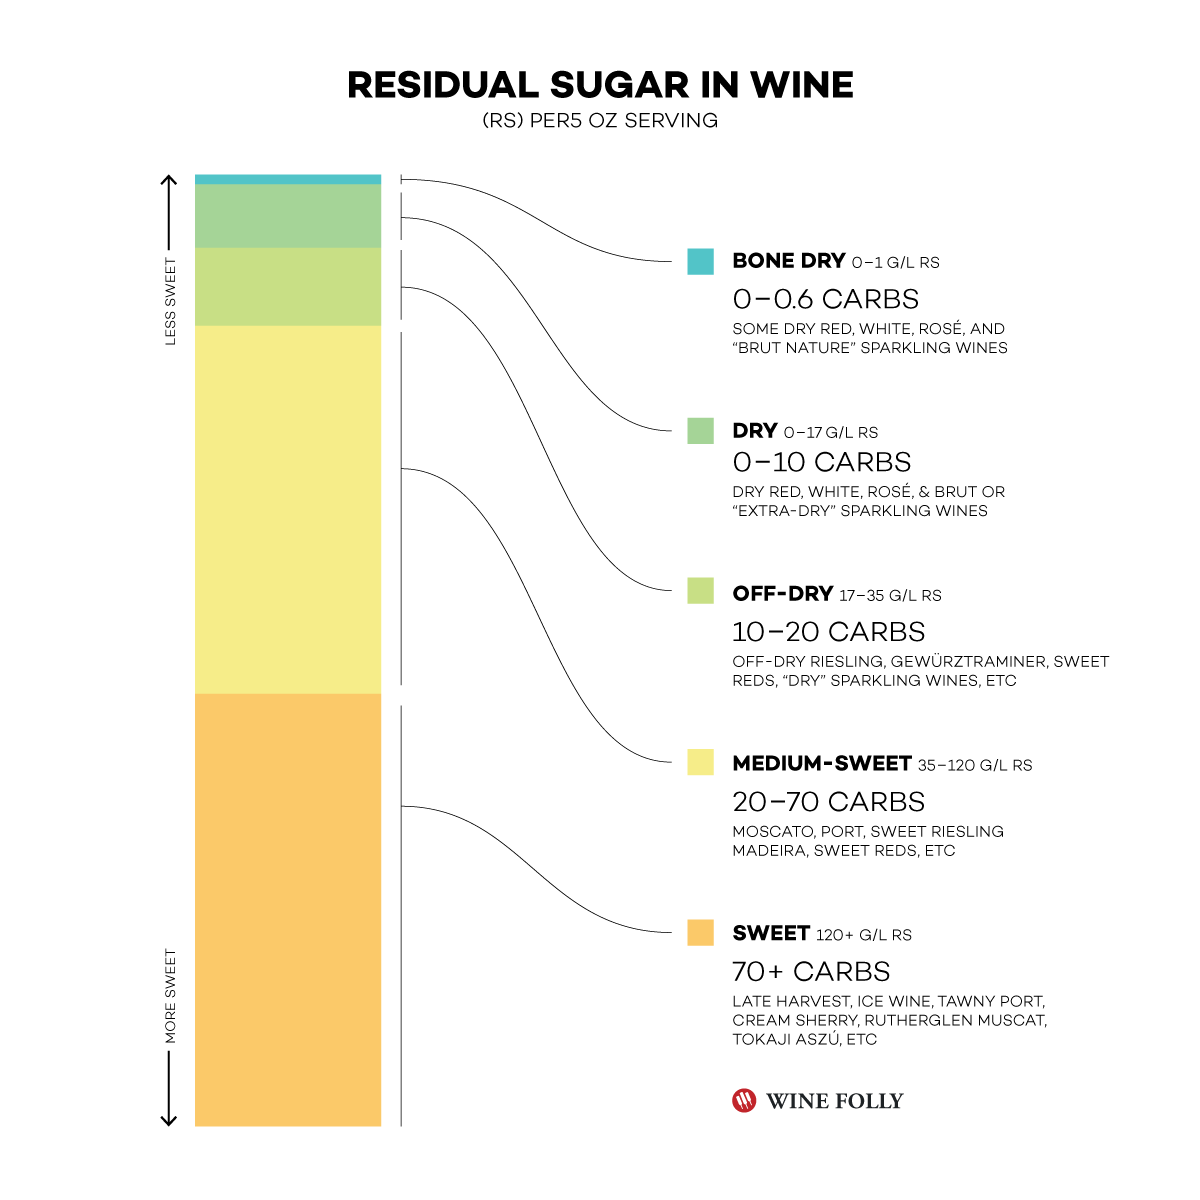 Residual sugar levels in different styles of wine - Infographic by Wine Folly